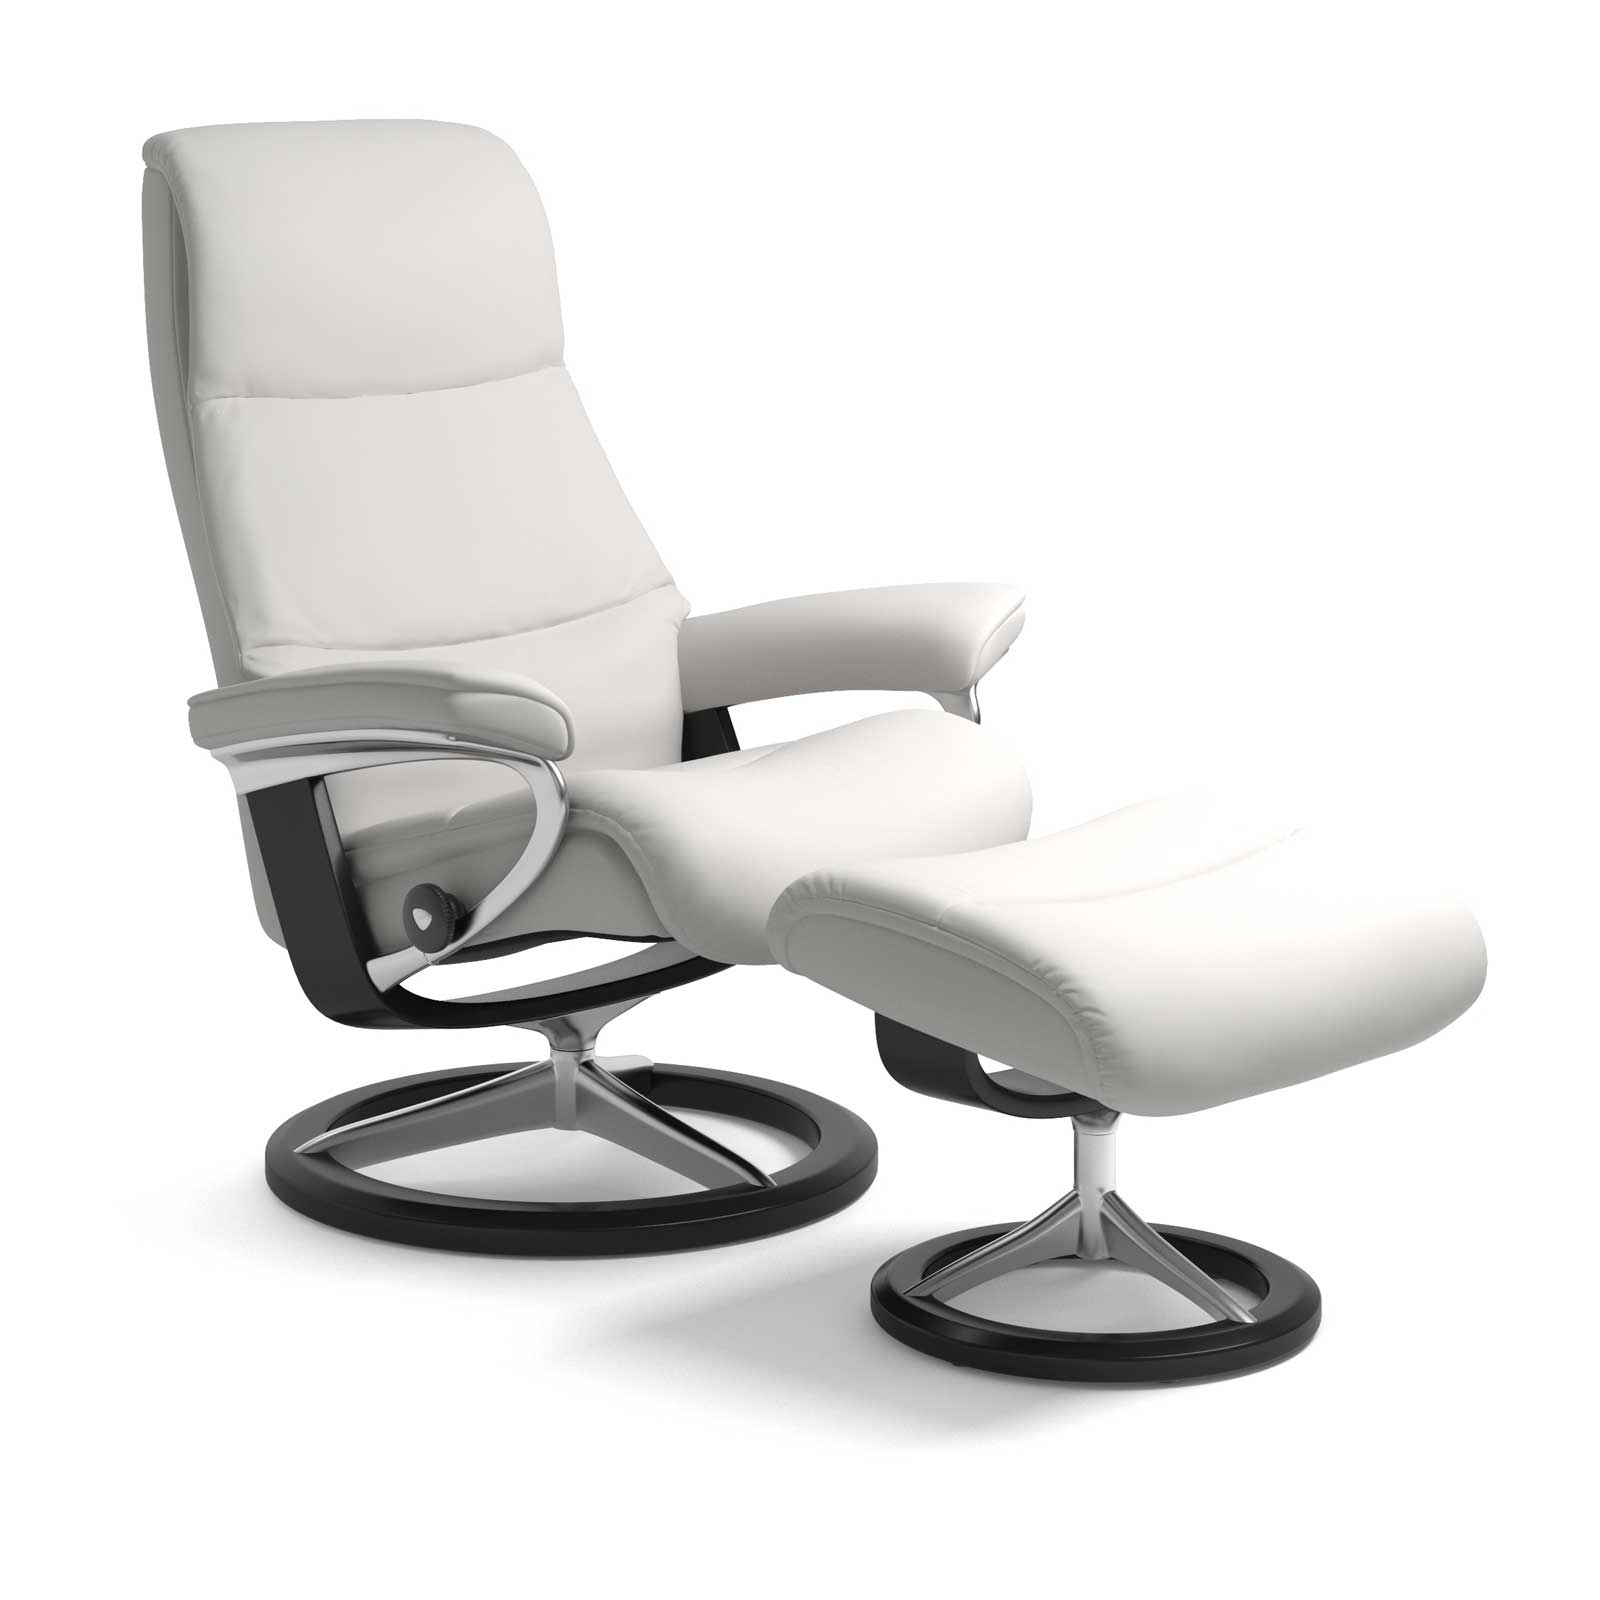 Stressless Wing Signature Sessel Stressless Sessel View Signature Batick Snow Mit Hocker